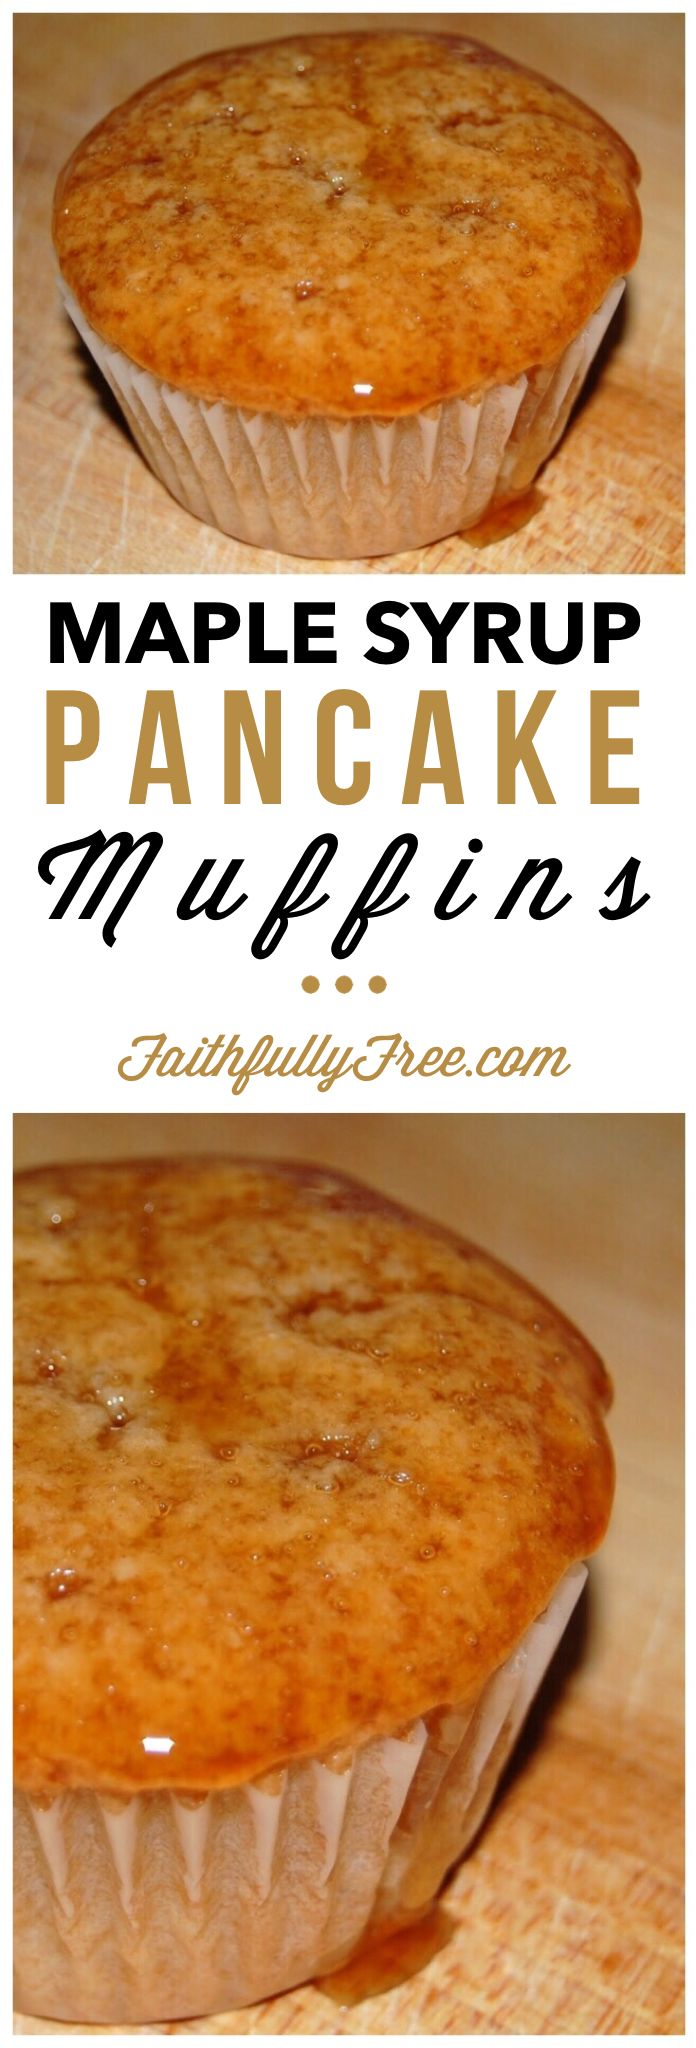 Pancake Souffle Muffins With Strawberry-Maple Syrup Recipe ...